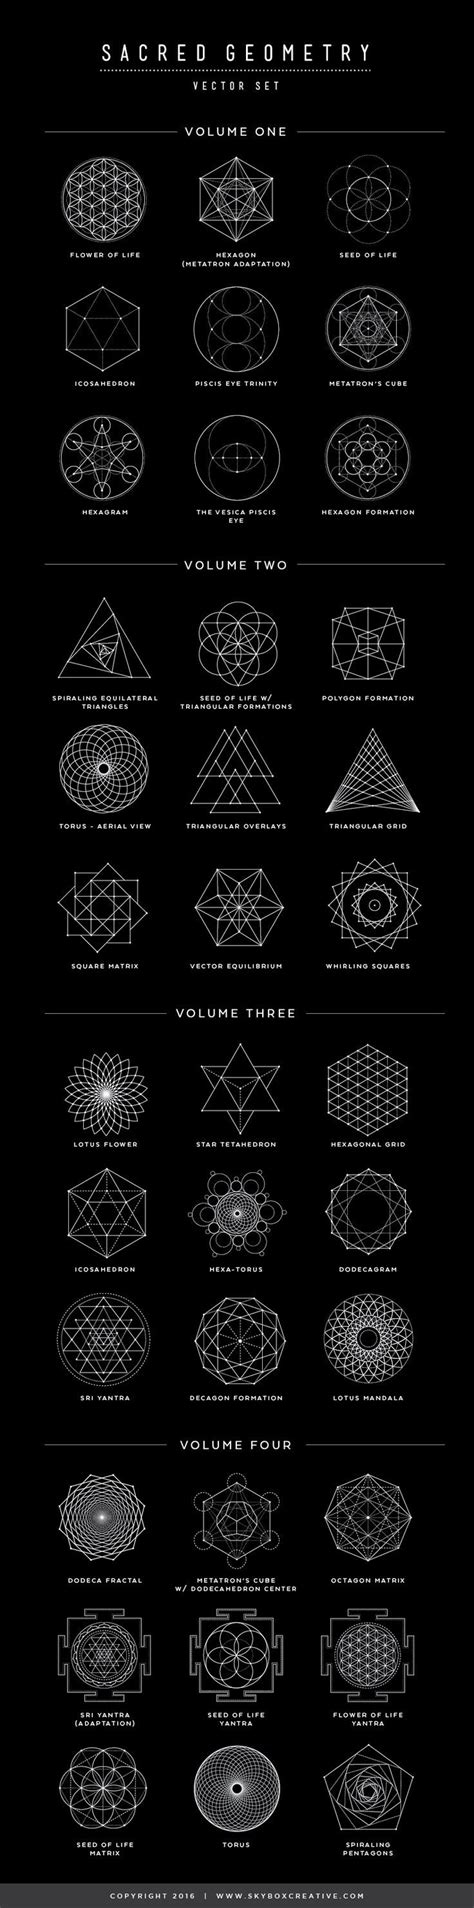 geometric tattoos and their meanings sacred geometry symbols their names and meanings great